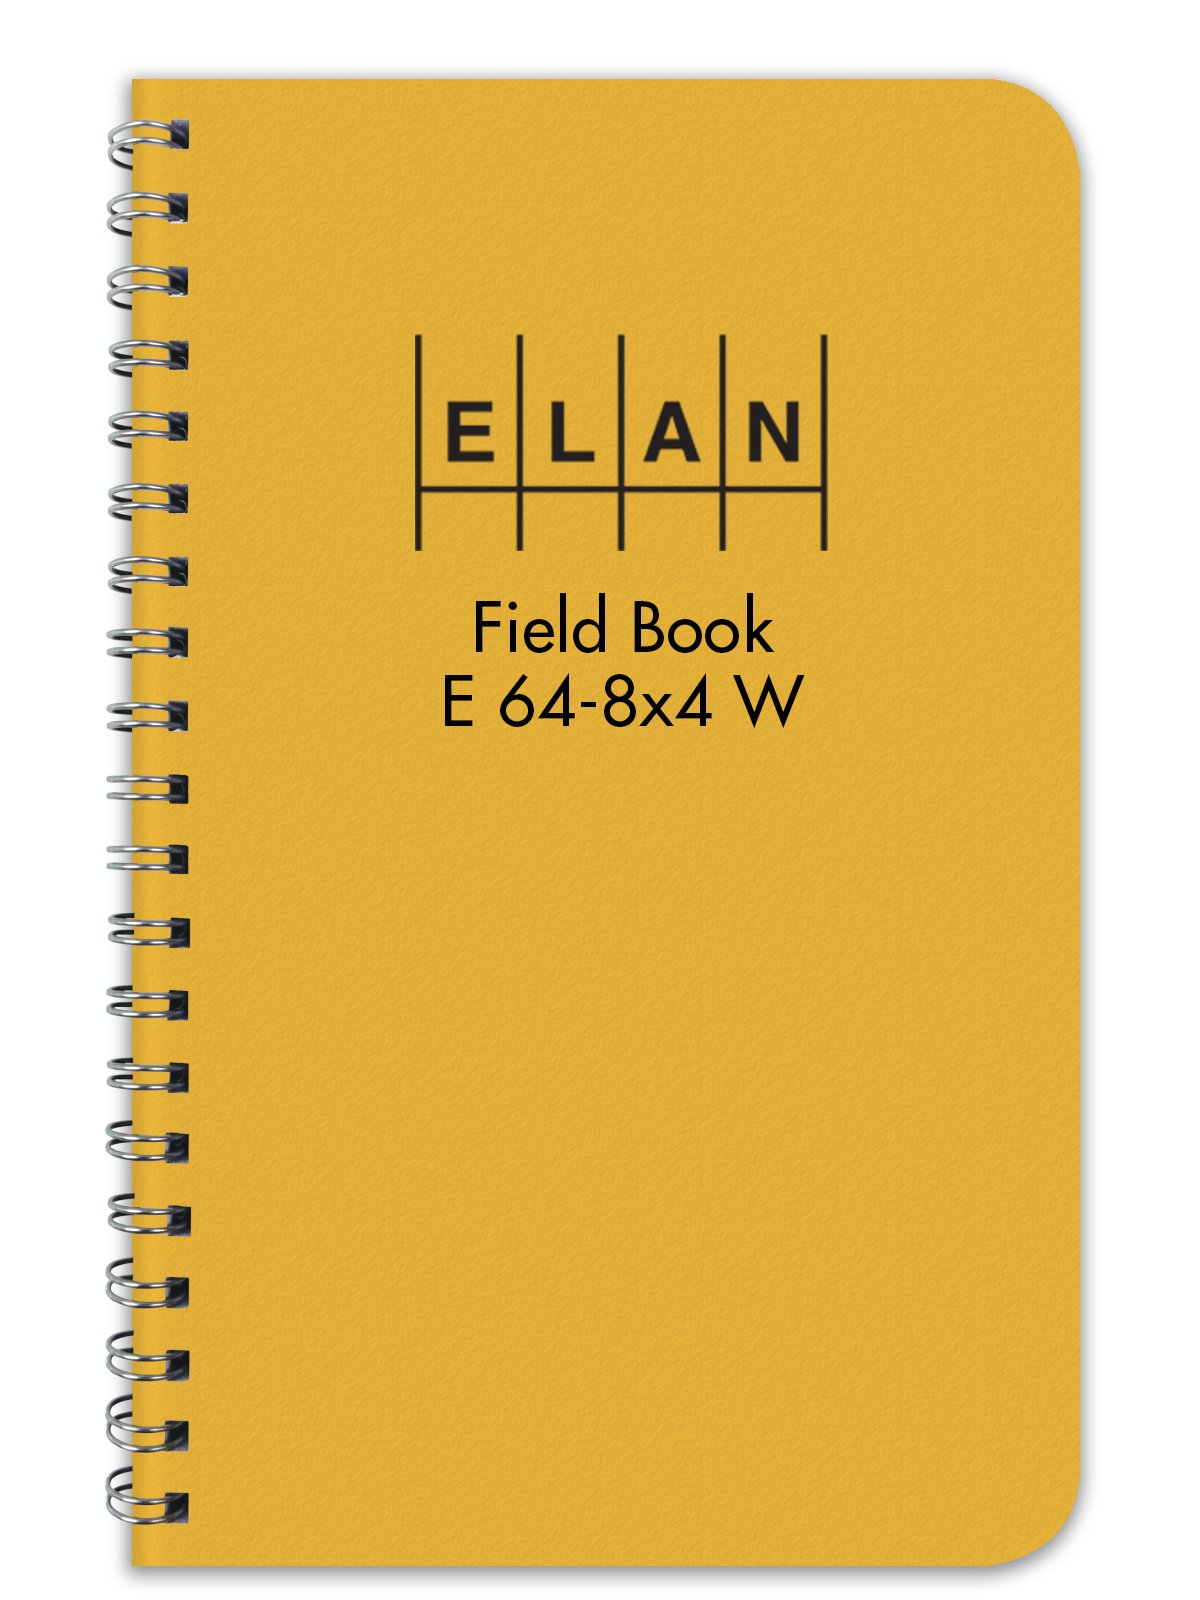 Elan Publishing Company E64-8x4W Wire-O Field Surveying Book 4 ⅞ x 7 ¼ Yellow Stiff Cover (Pack of 48)